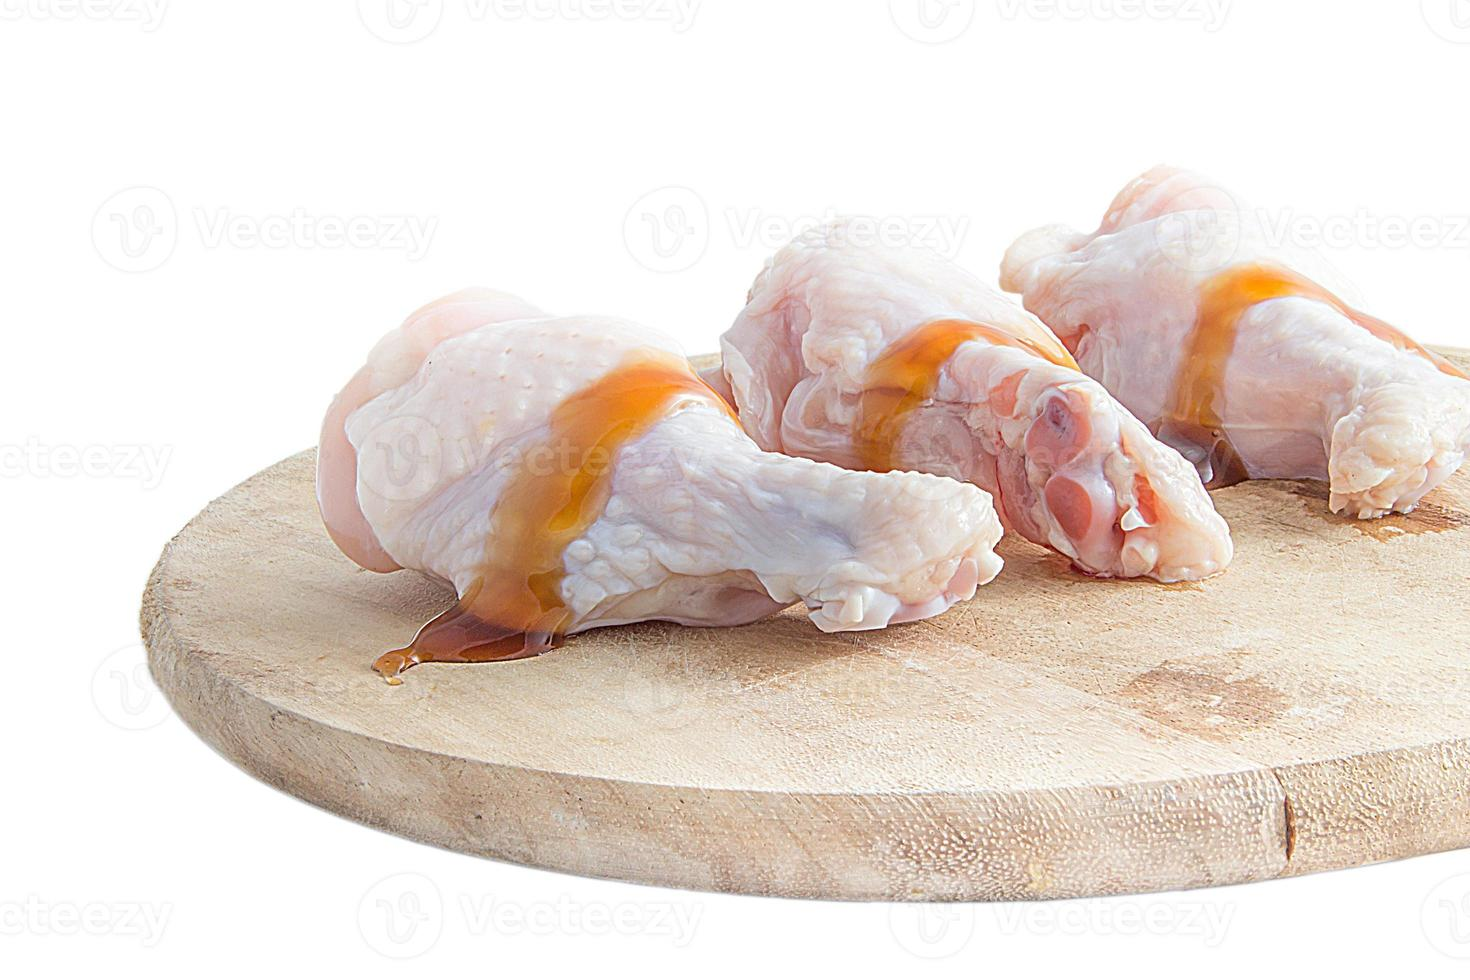 raw chicken legs on wooden cutting boards on white background photo